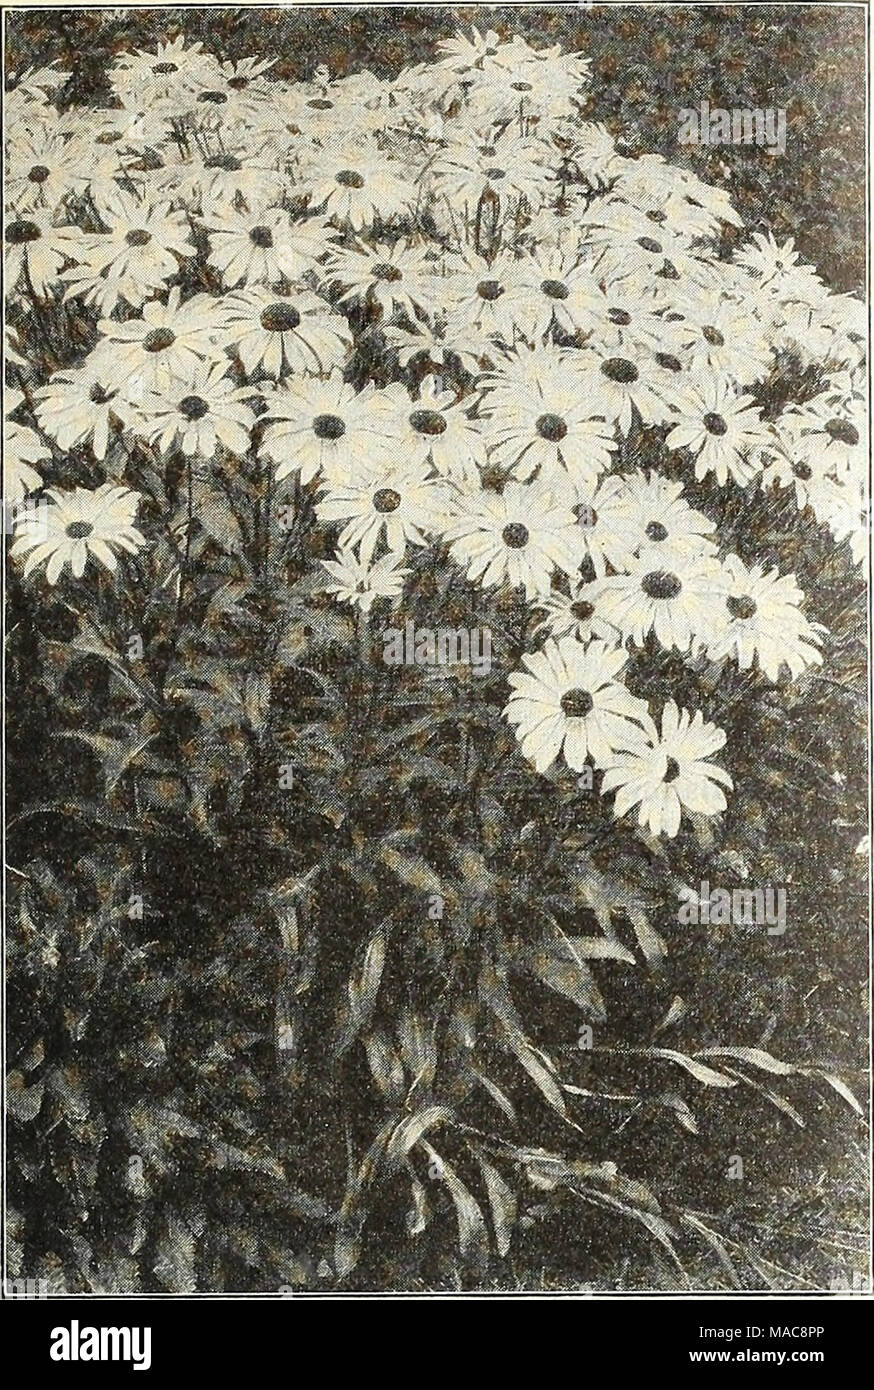 Dreers mid summer list 1928 shasta daisy alaska cerastium snow shasta daisy alaska cerastium snow in summer per pkt 1911 tomentosum a very pretty dwarf white leaved edging plant bearing small white flowers mightylinksfo